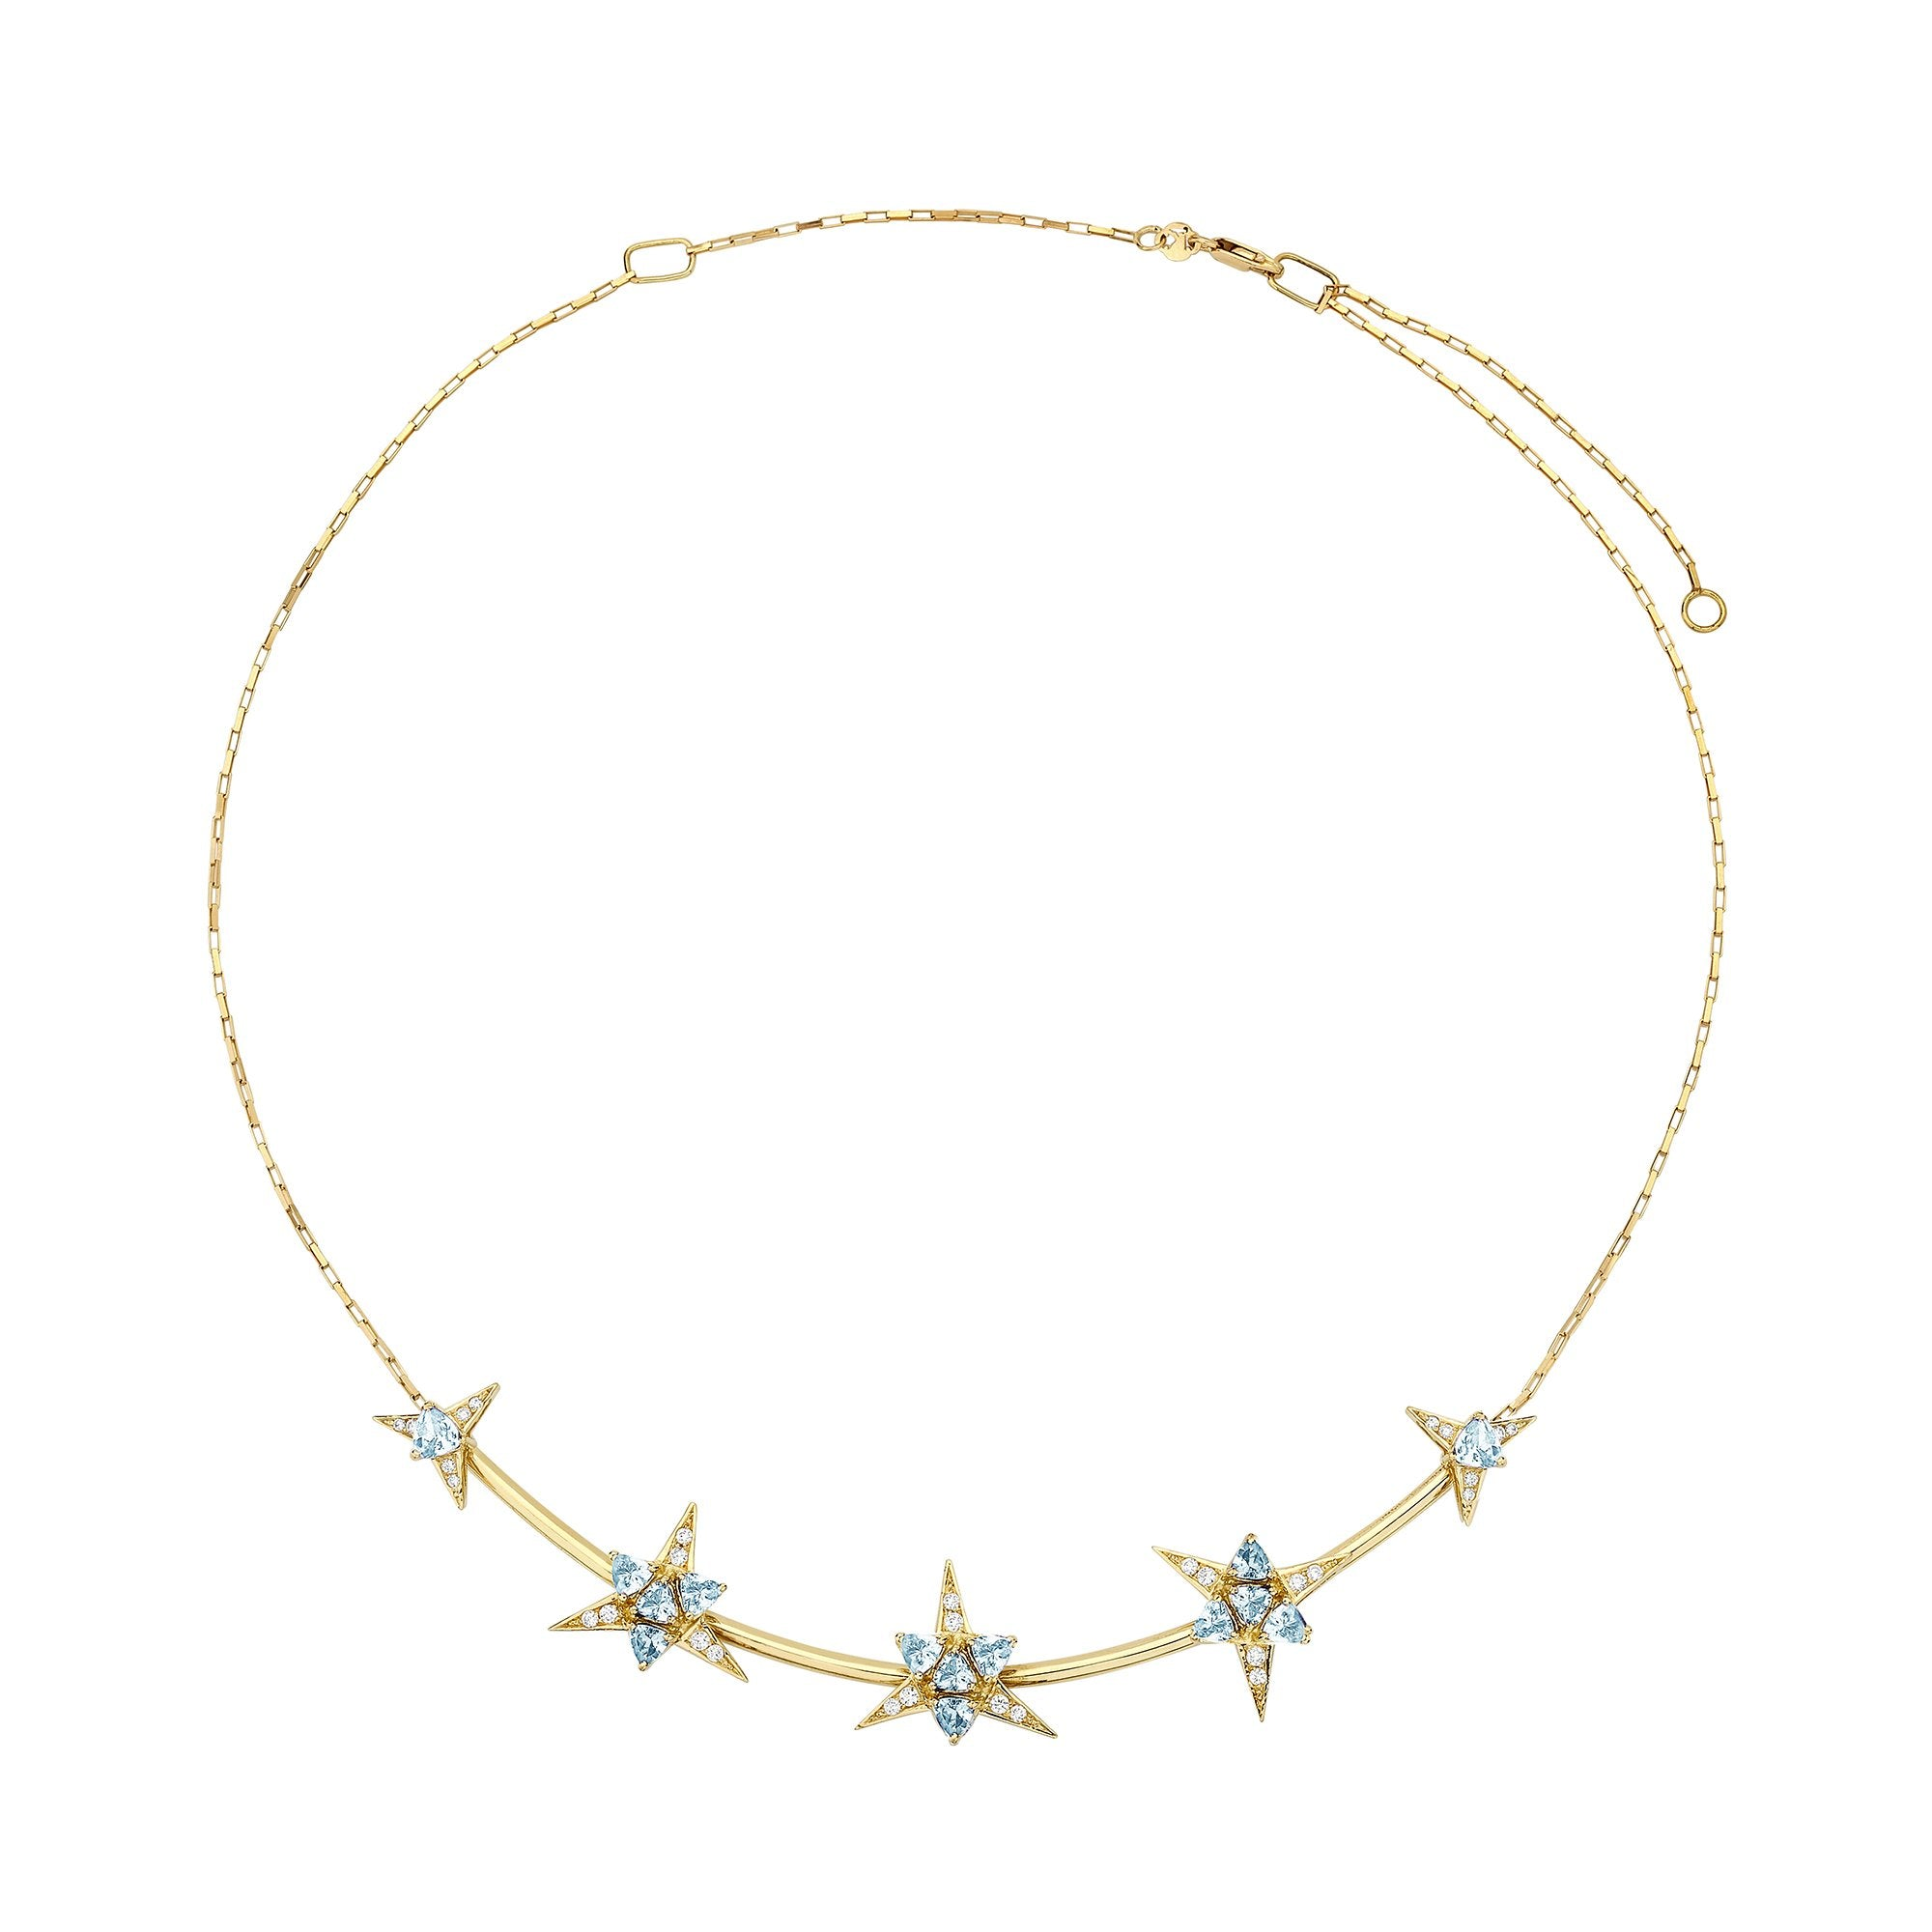 Galactic Star Necklace - Carol Kauffman - Necklaces | Broken English Jewelry